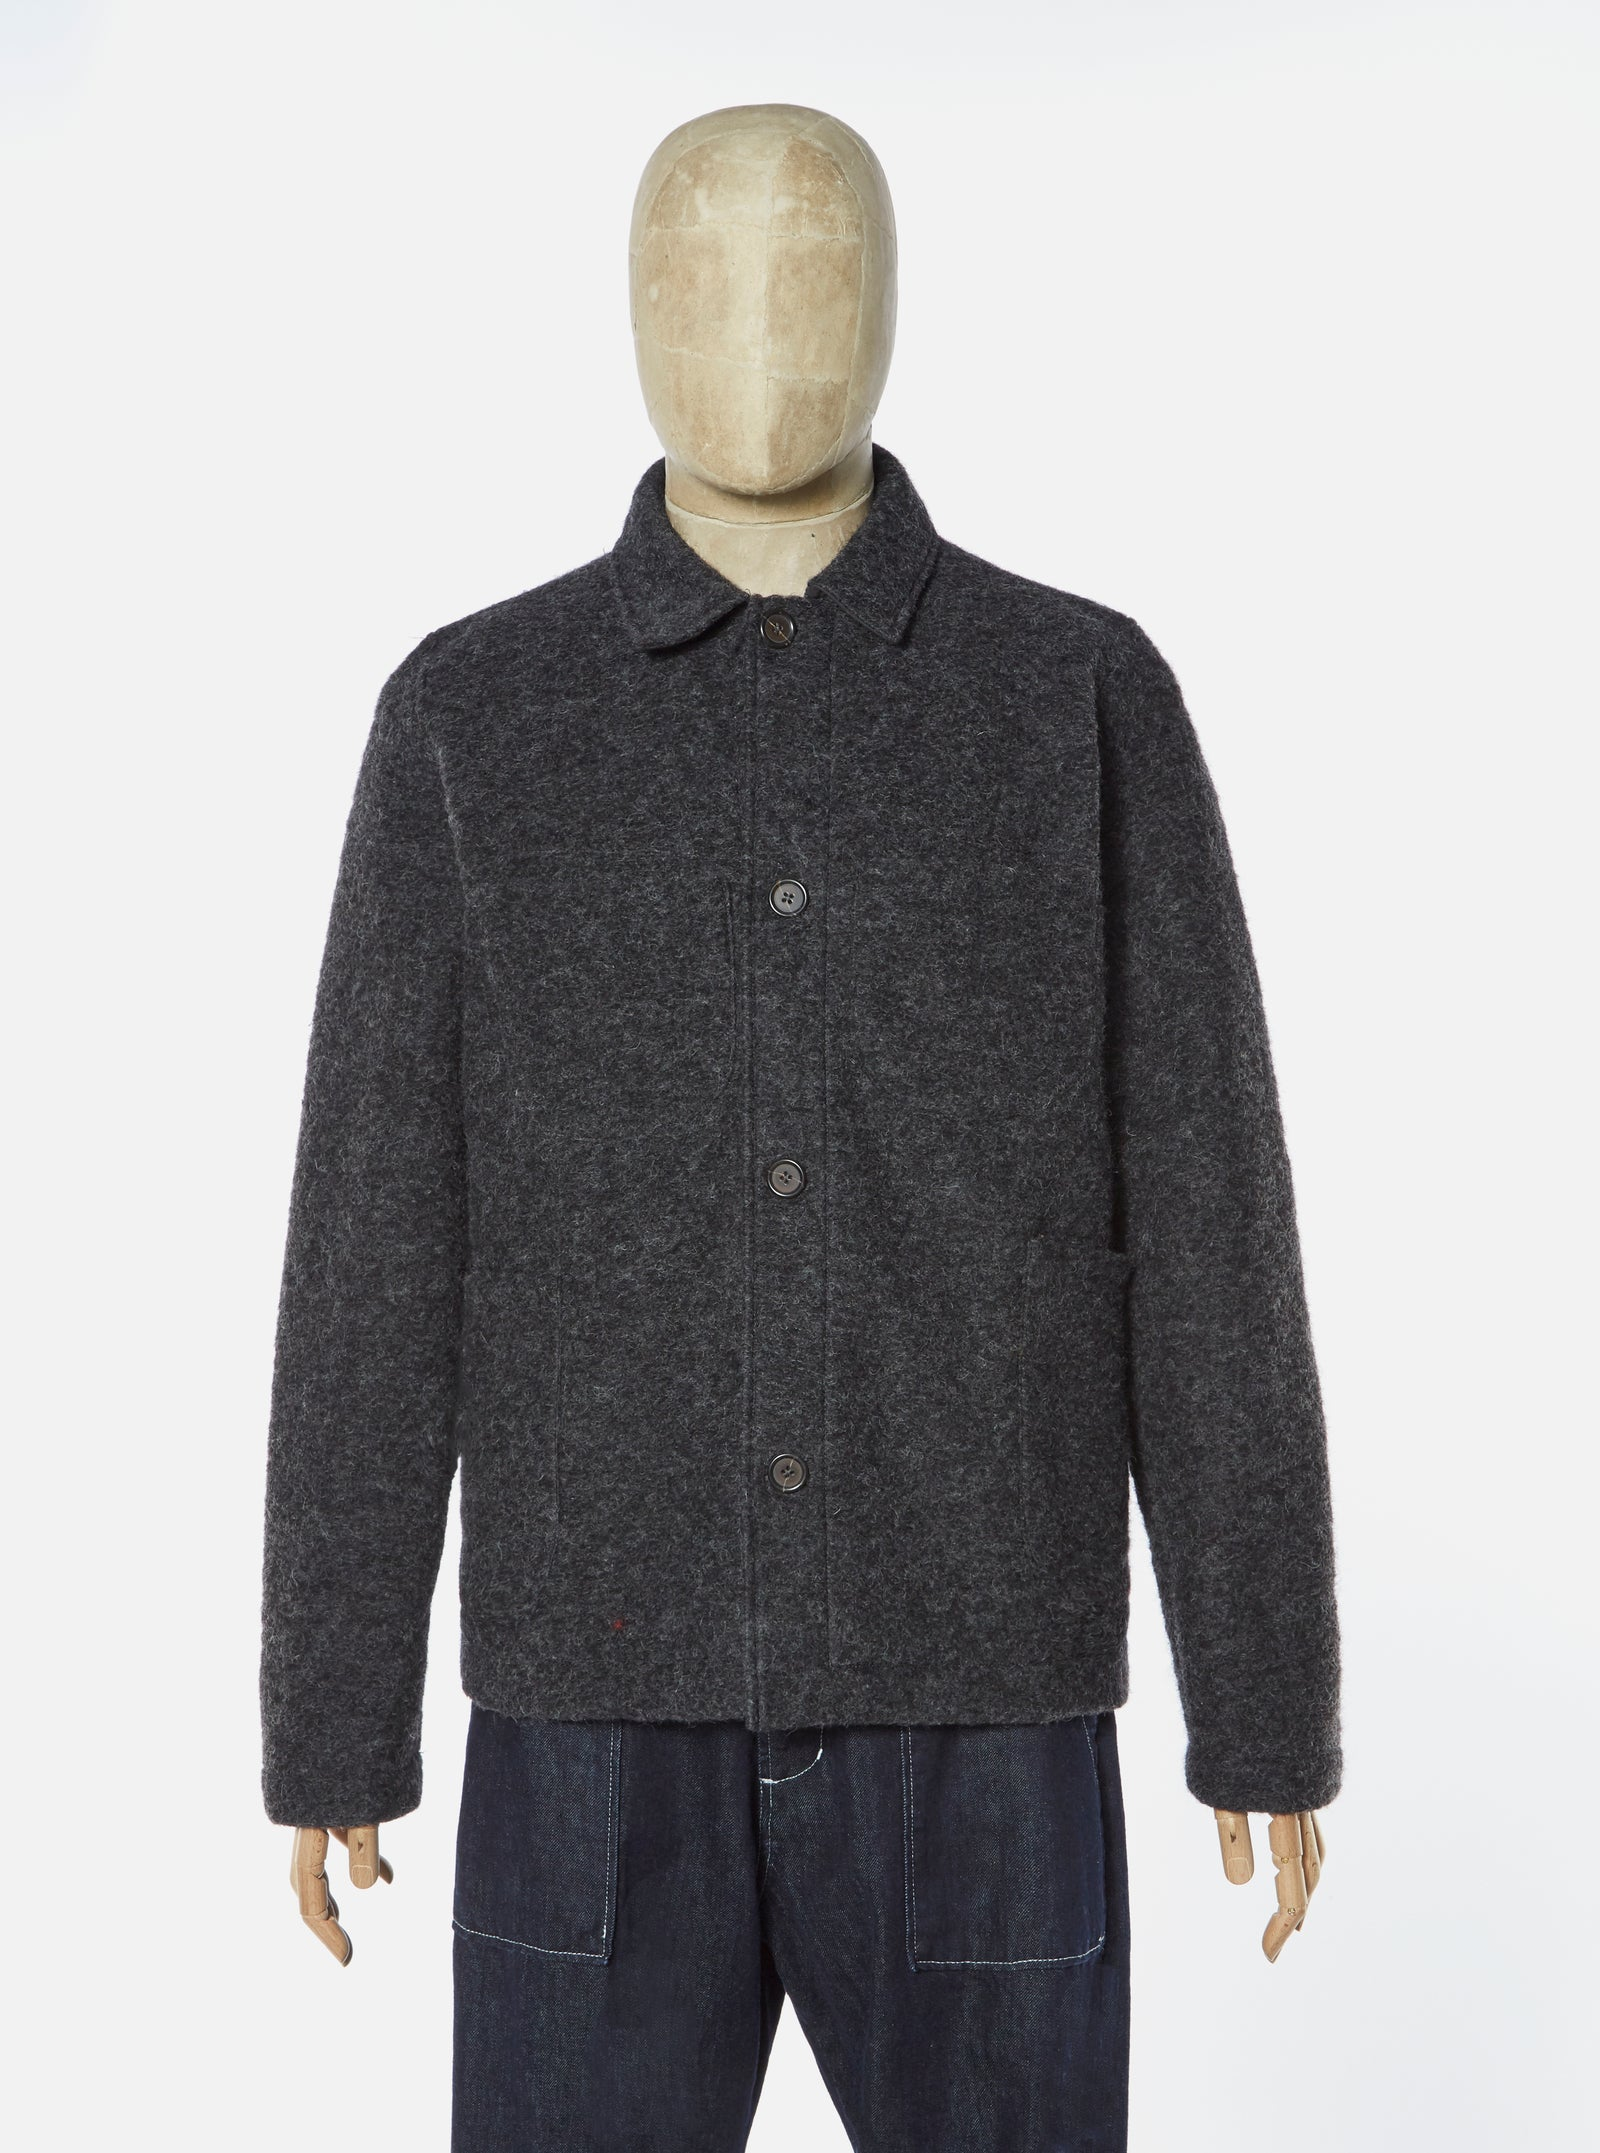 Universal Works Lumber Jacket in Charcoal Wool Fleece